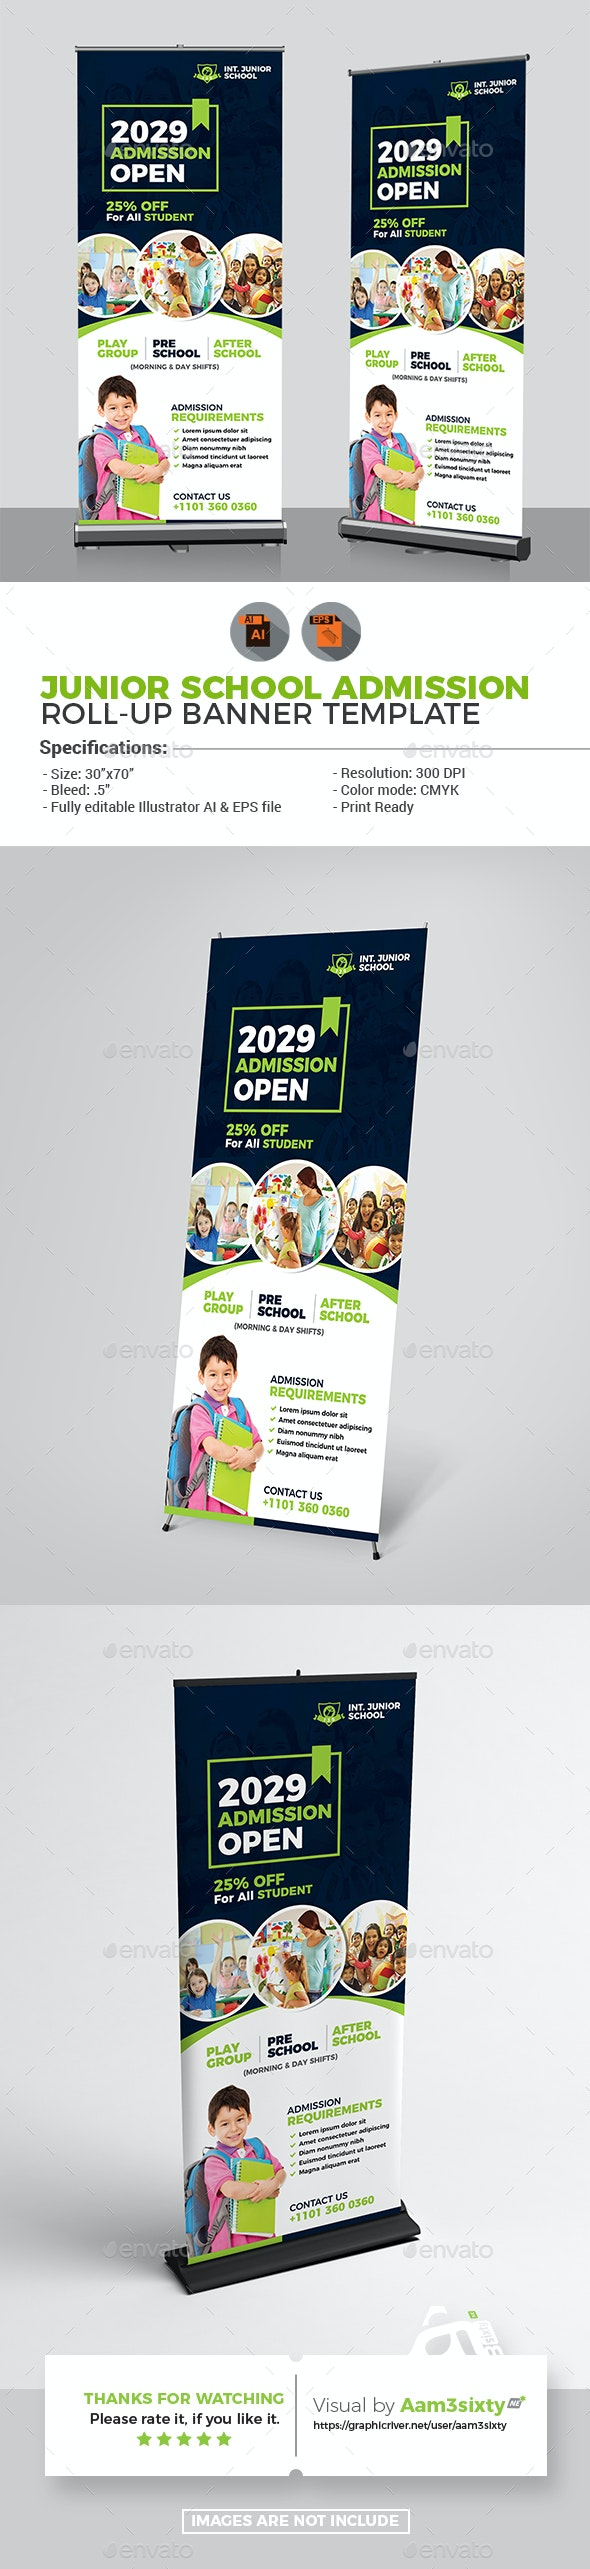 Junior School Admission Poster Rollup - Signage Print Templates